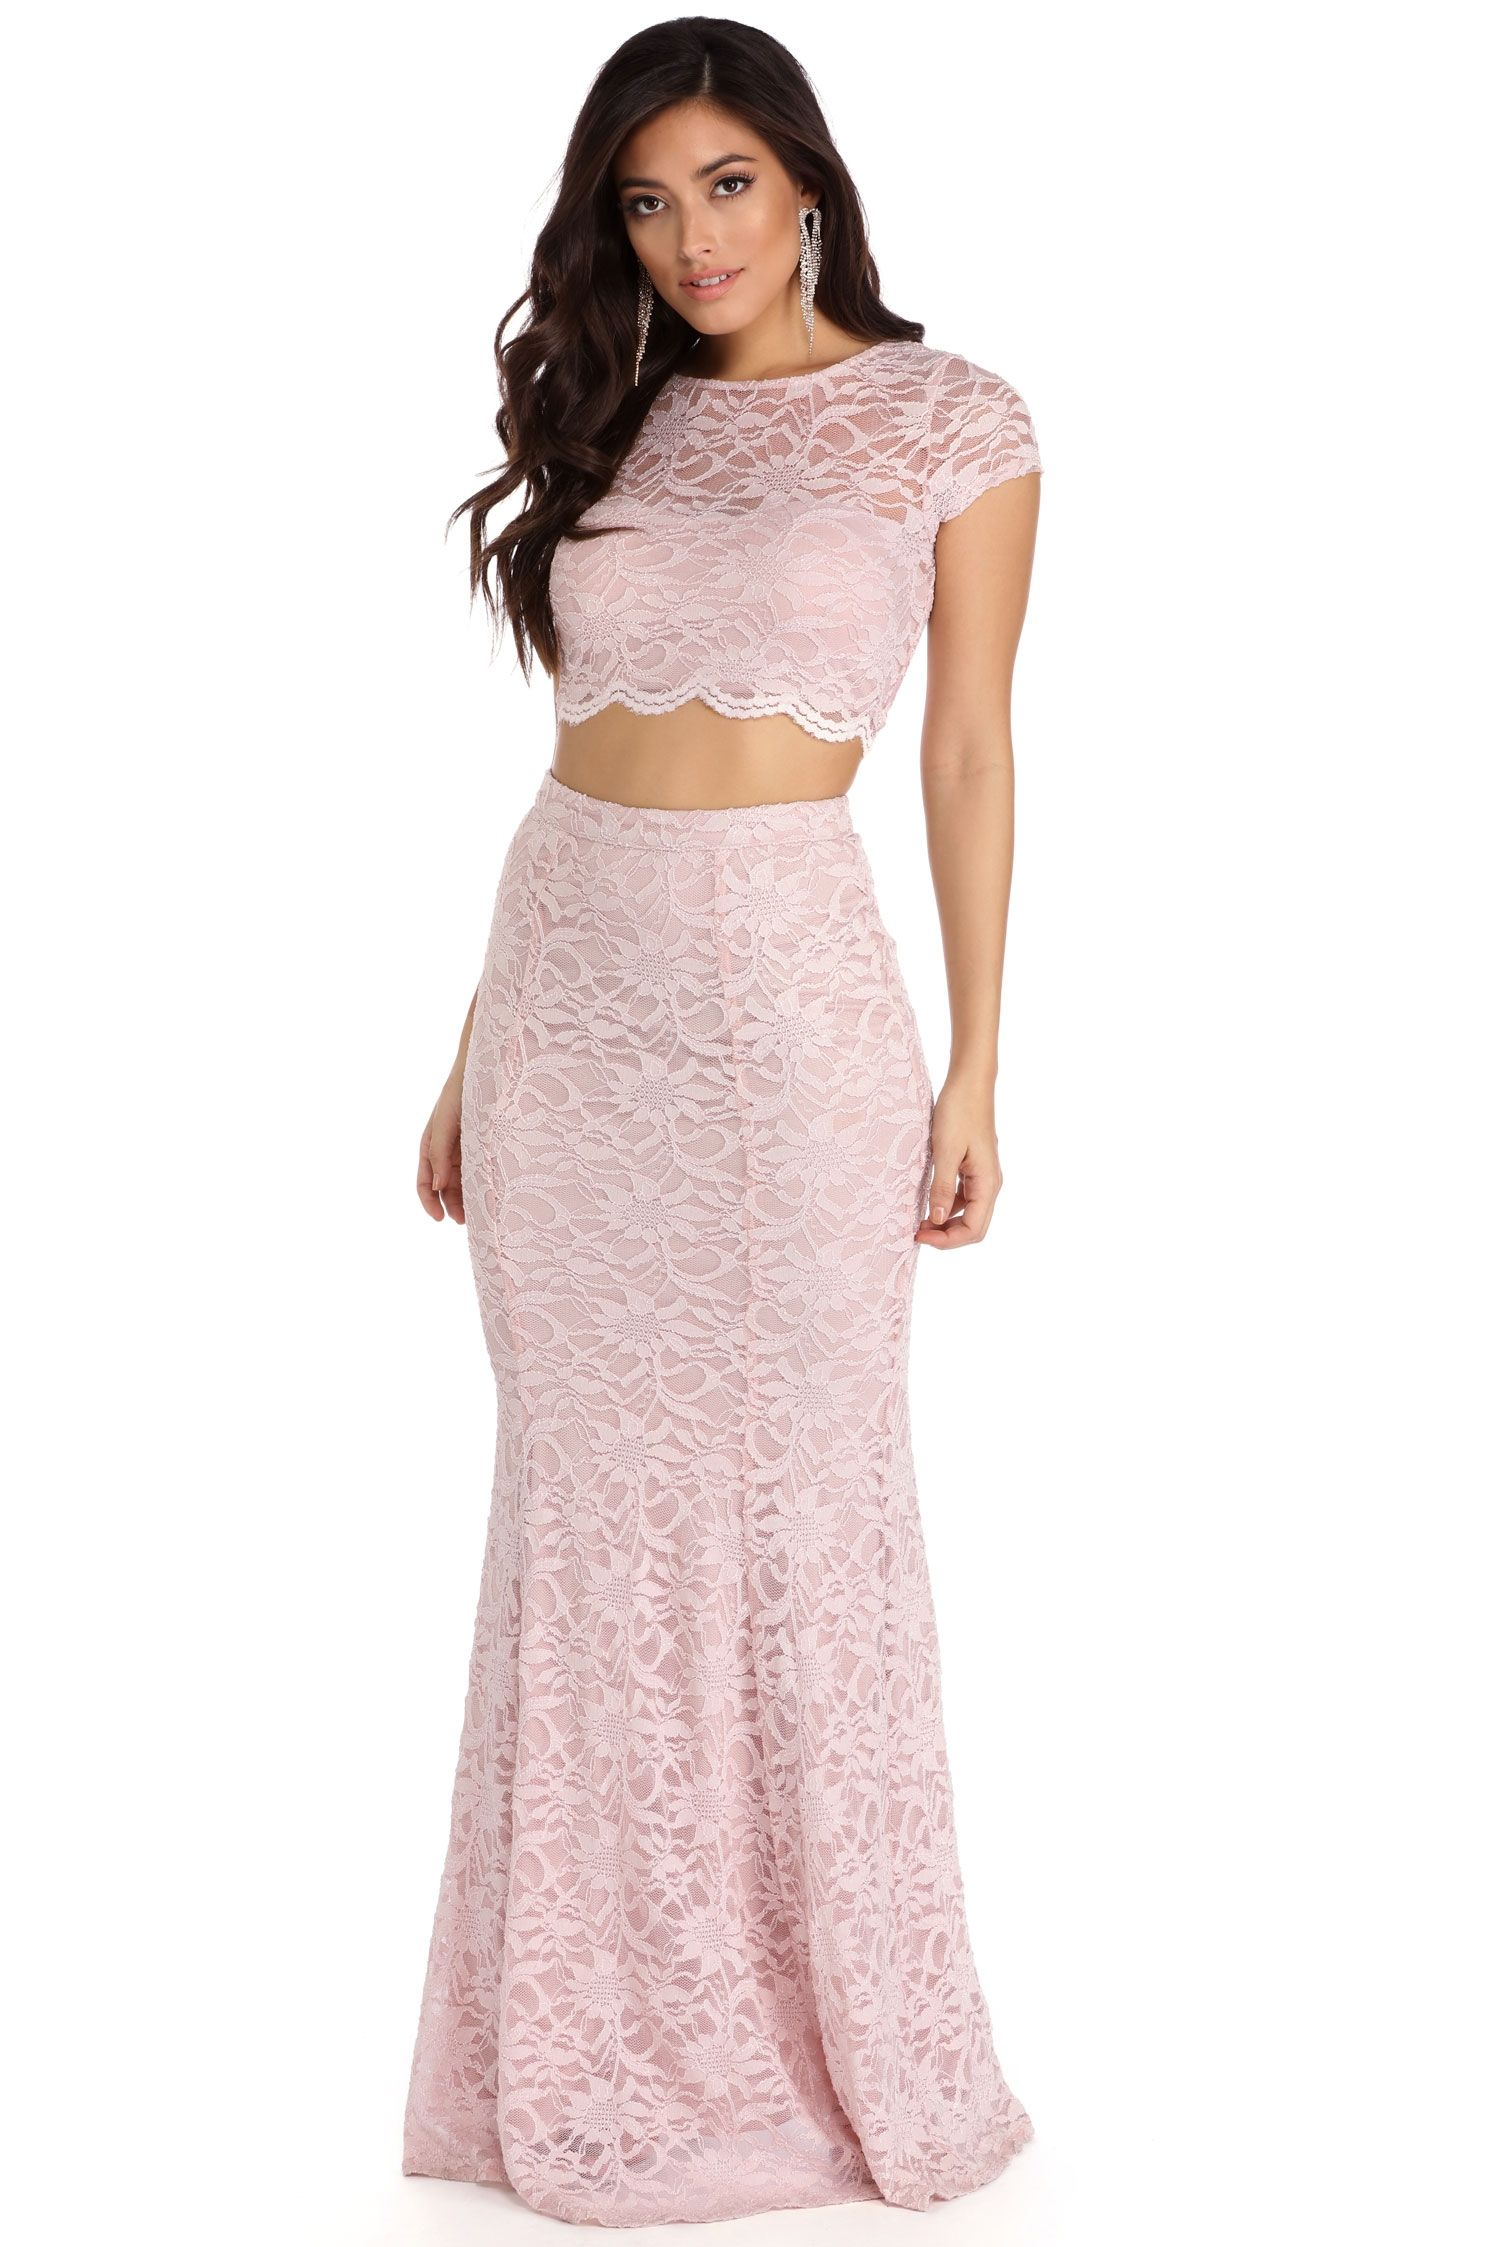 FINAL SALE- Adelynn Pink Scalloped Lace Two Piece | Classy party ...